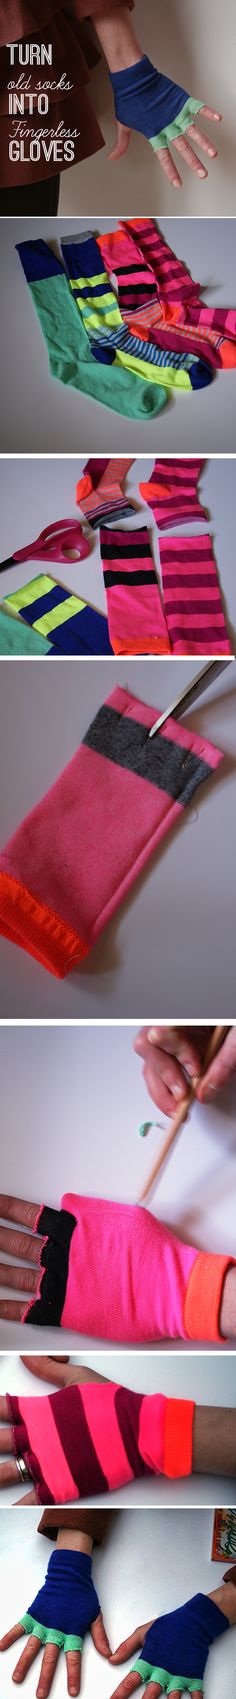 {DIY Super EASY Fingerless Gloves} from Old Socks!!!!! Or New Ones!! ......GENIUS!! Huge Fingerless Glove Fan...so doing this with some Funky Knee Socks!